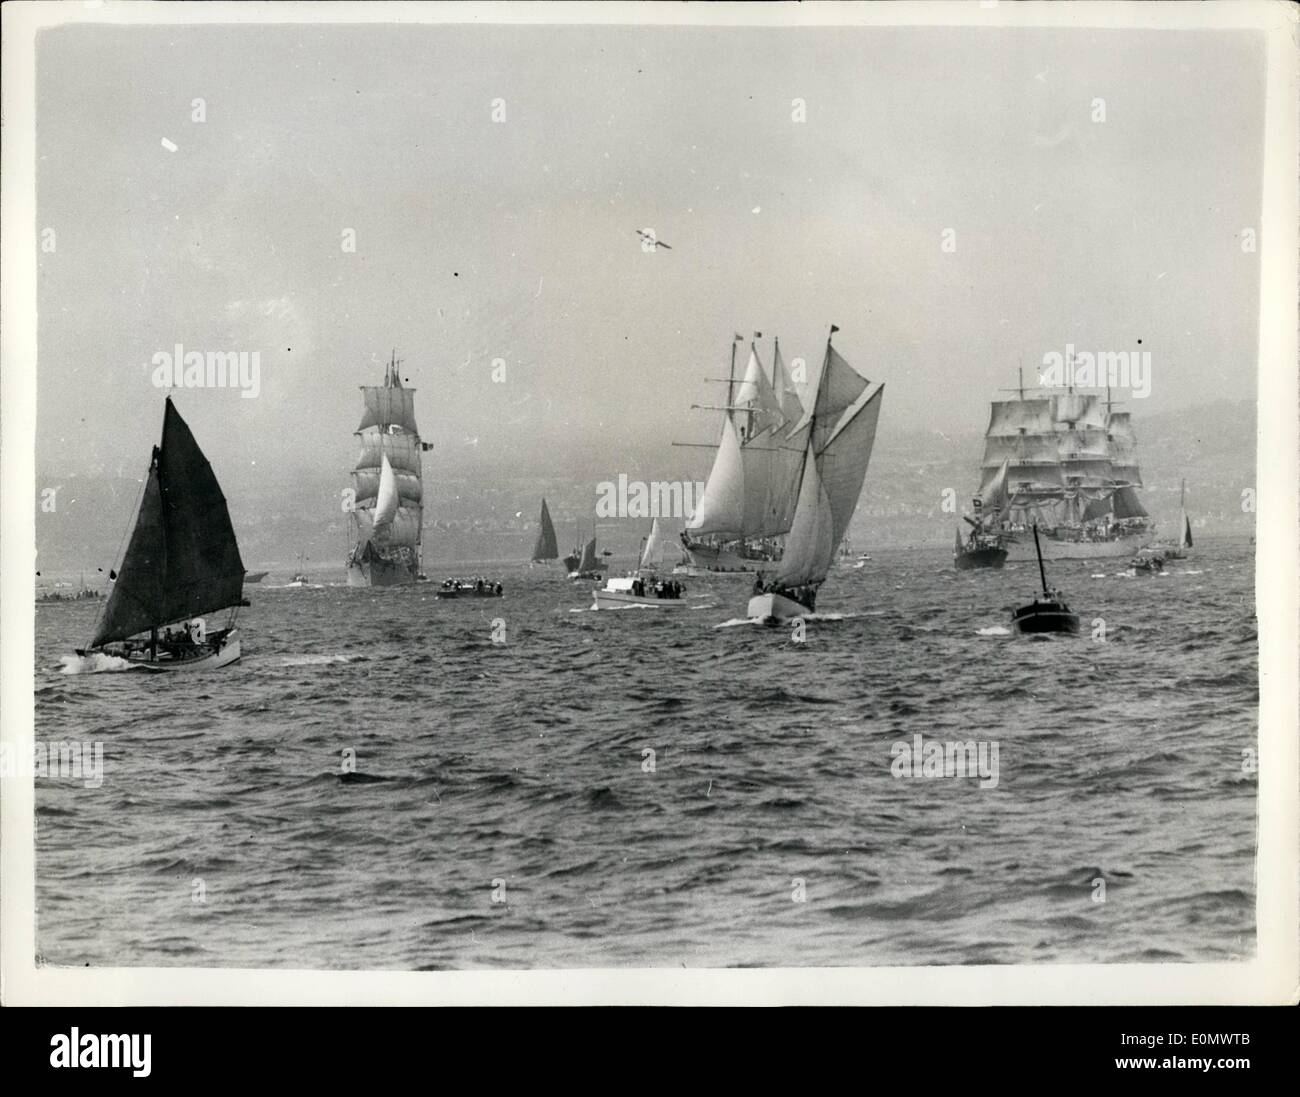 Jul. 07, 1956 - Twenty-Two Sailing Craft Begin Their 800-Miles Race From Torbay To Lisbon.: Twenty-two sailing vessels of all nations took part in the sail training Ship International Race From Torbay to Lisbon which began yesterday. Photo Shows general view of some of the various sailing vessels seen soon after the start of the race. - Stock Image